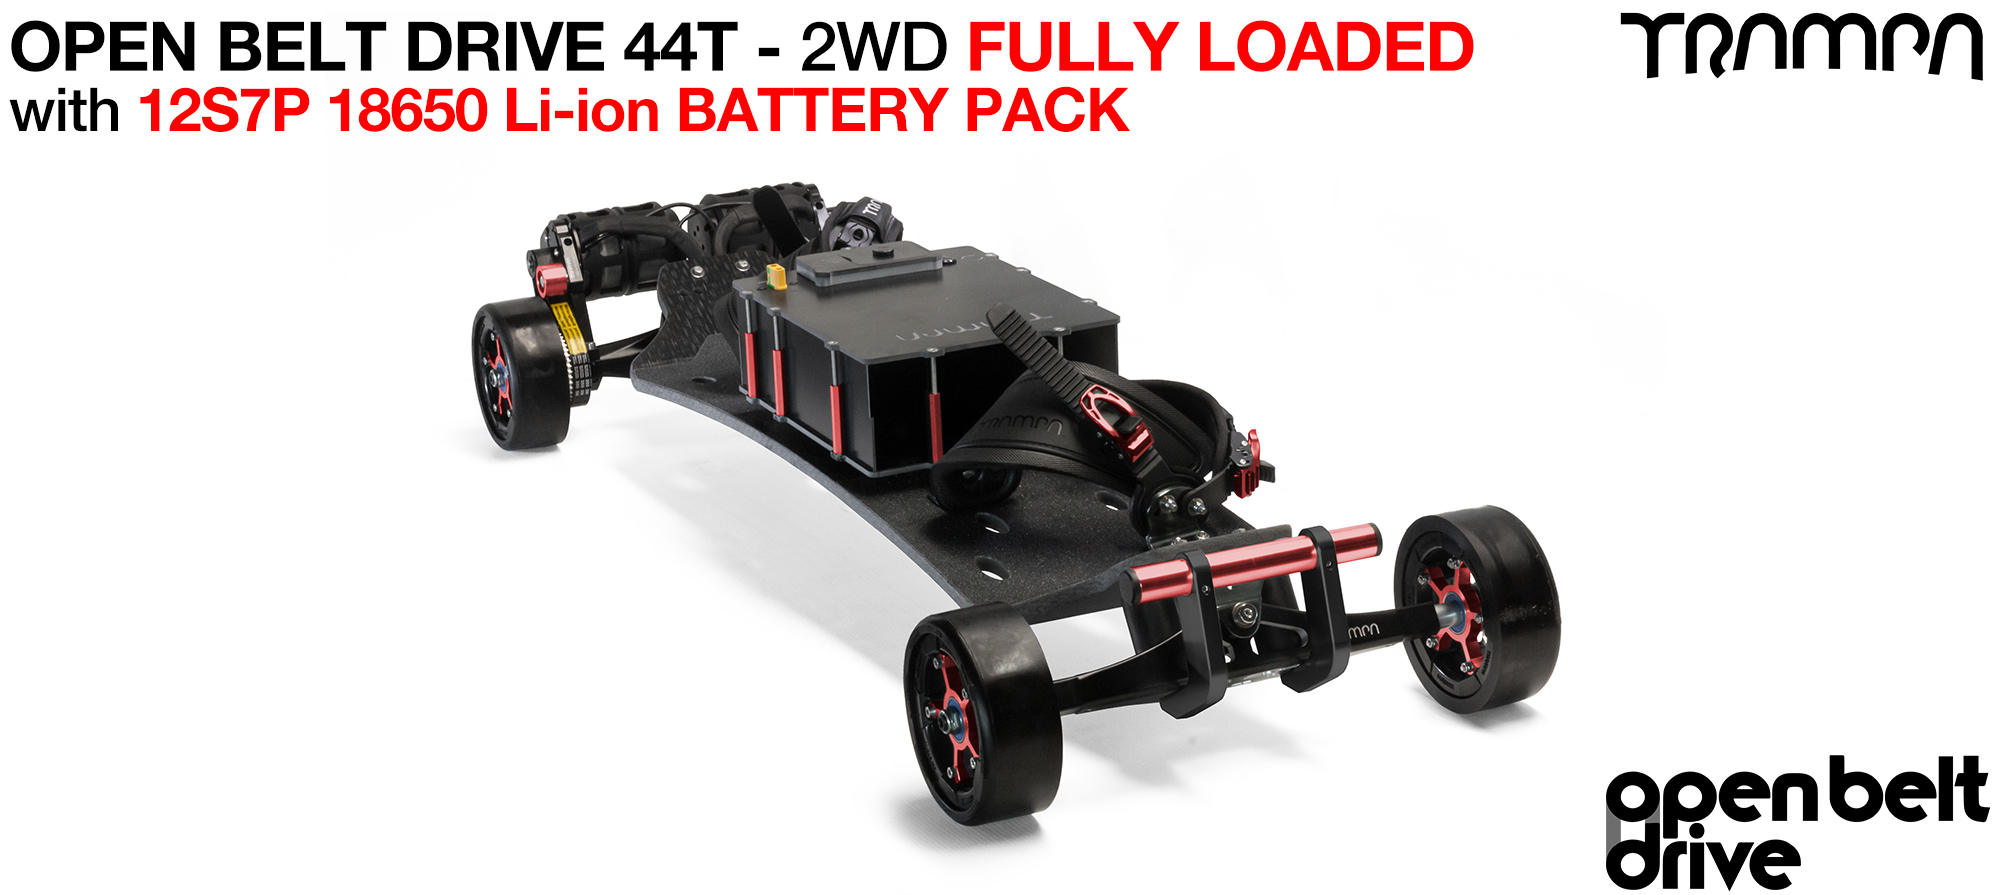 2WD 66T Open Belt Drive TRAMPA Electric Mountainboard with 125mm GUMMIES Giant Longboard Wheels & 44 Tooth Pulleys - LOADED 18650 CELL Pack